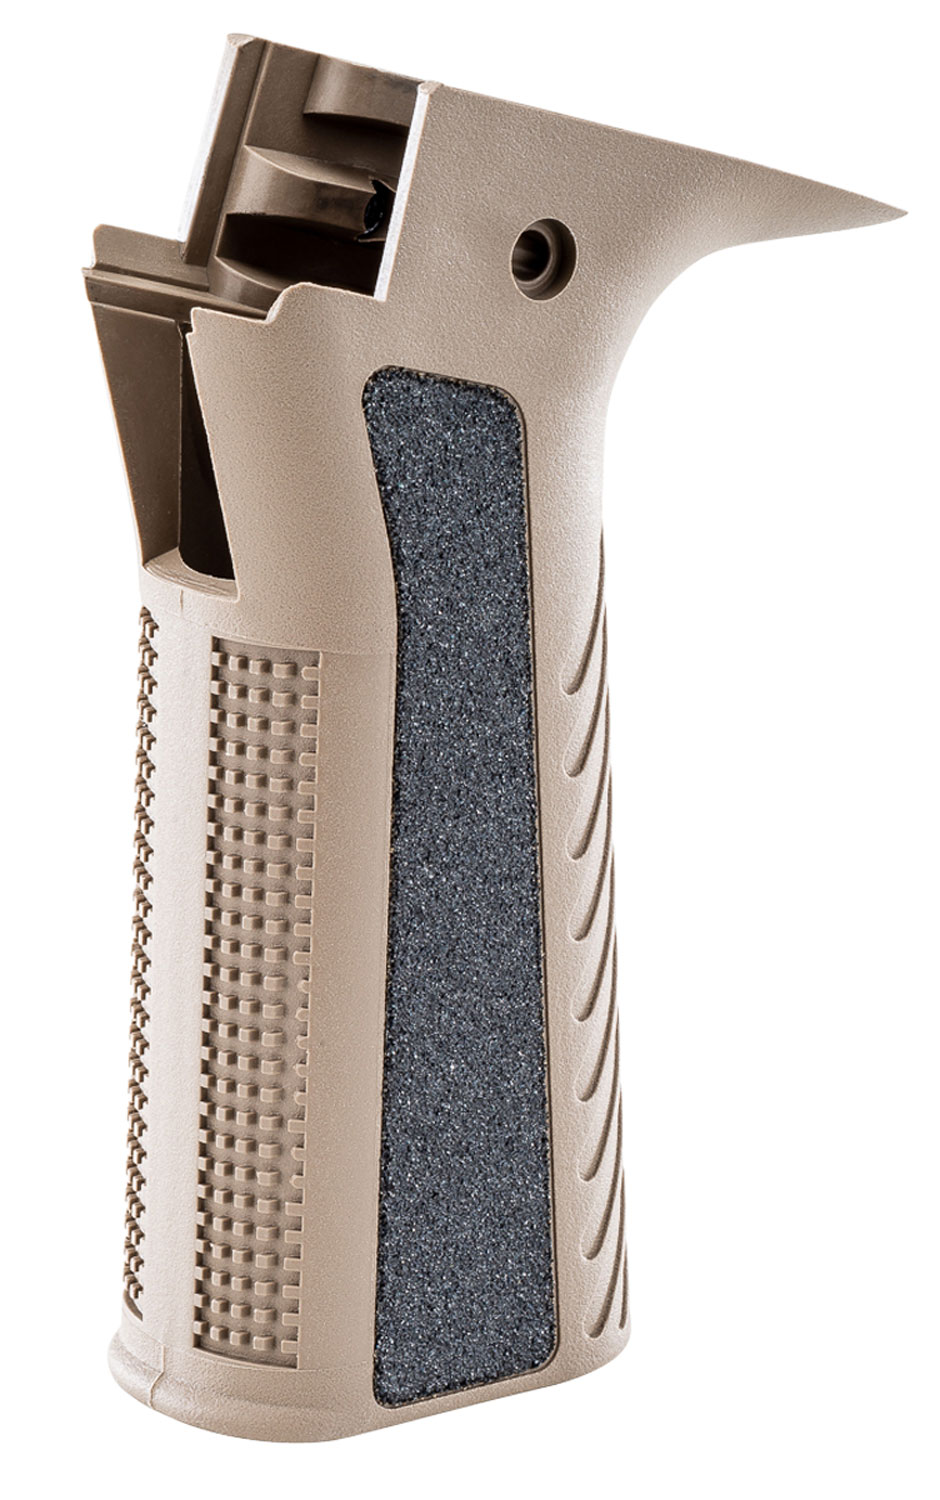 APEX TACTICAL SPECIALTIES 116111 Optimized Grip  CZ EVO 3 S1 Polymer Flat Dark Earth